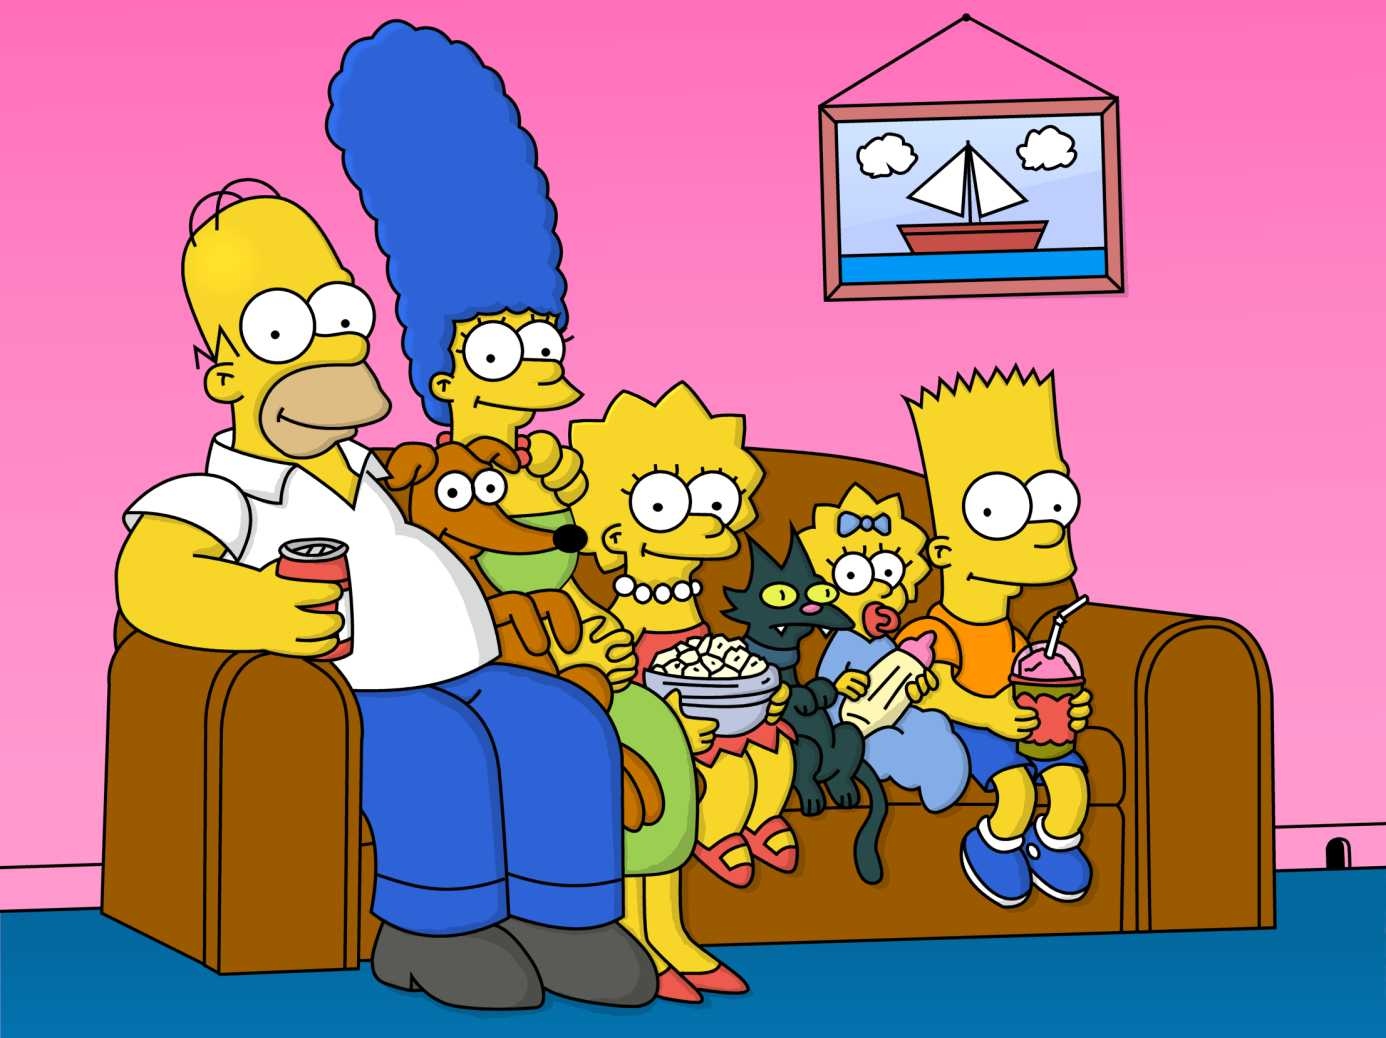 The Simpsons Take On The Hobbit Trilogy In Latest Couch Gag